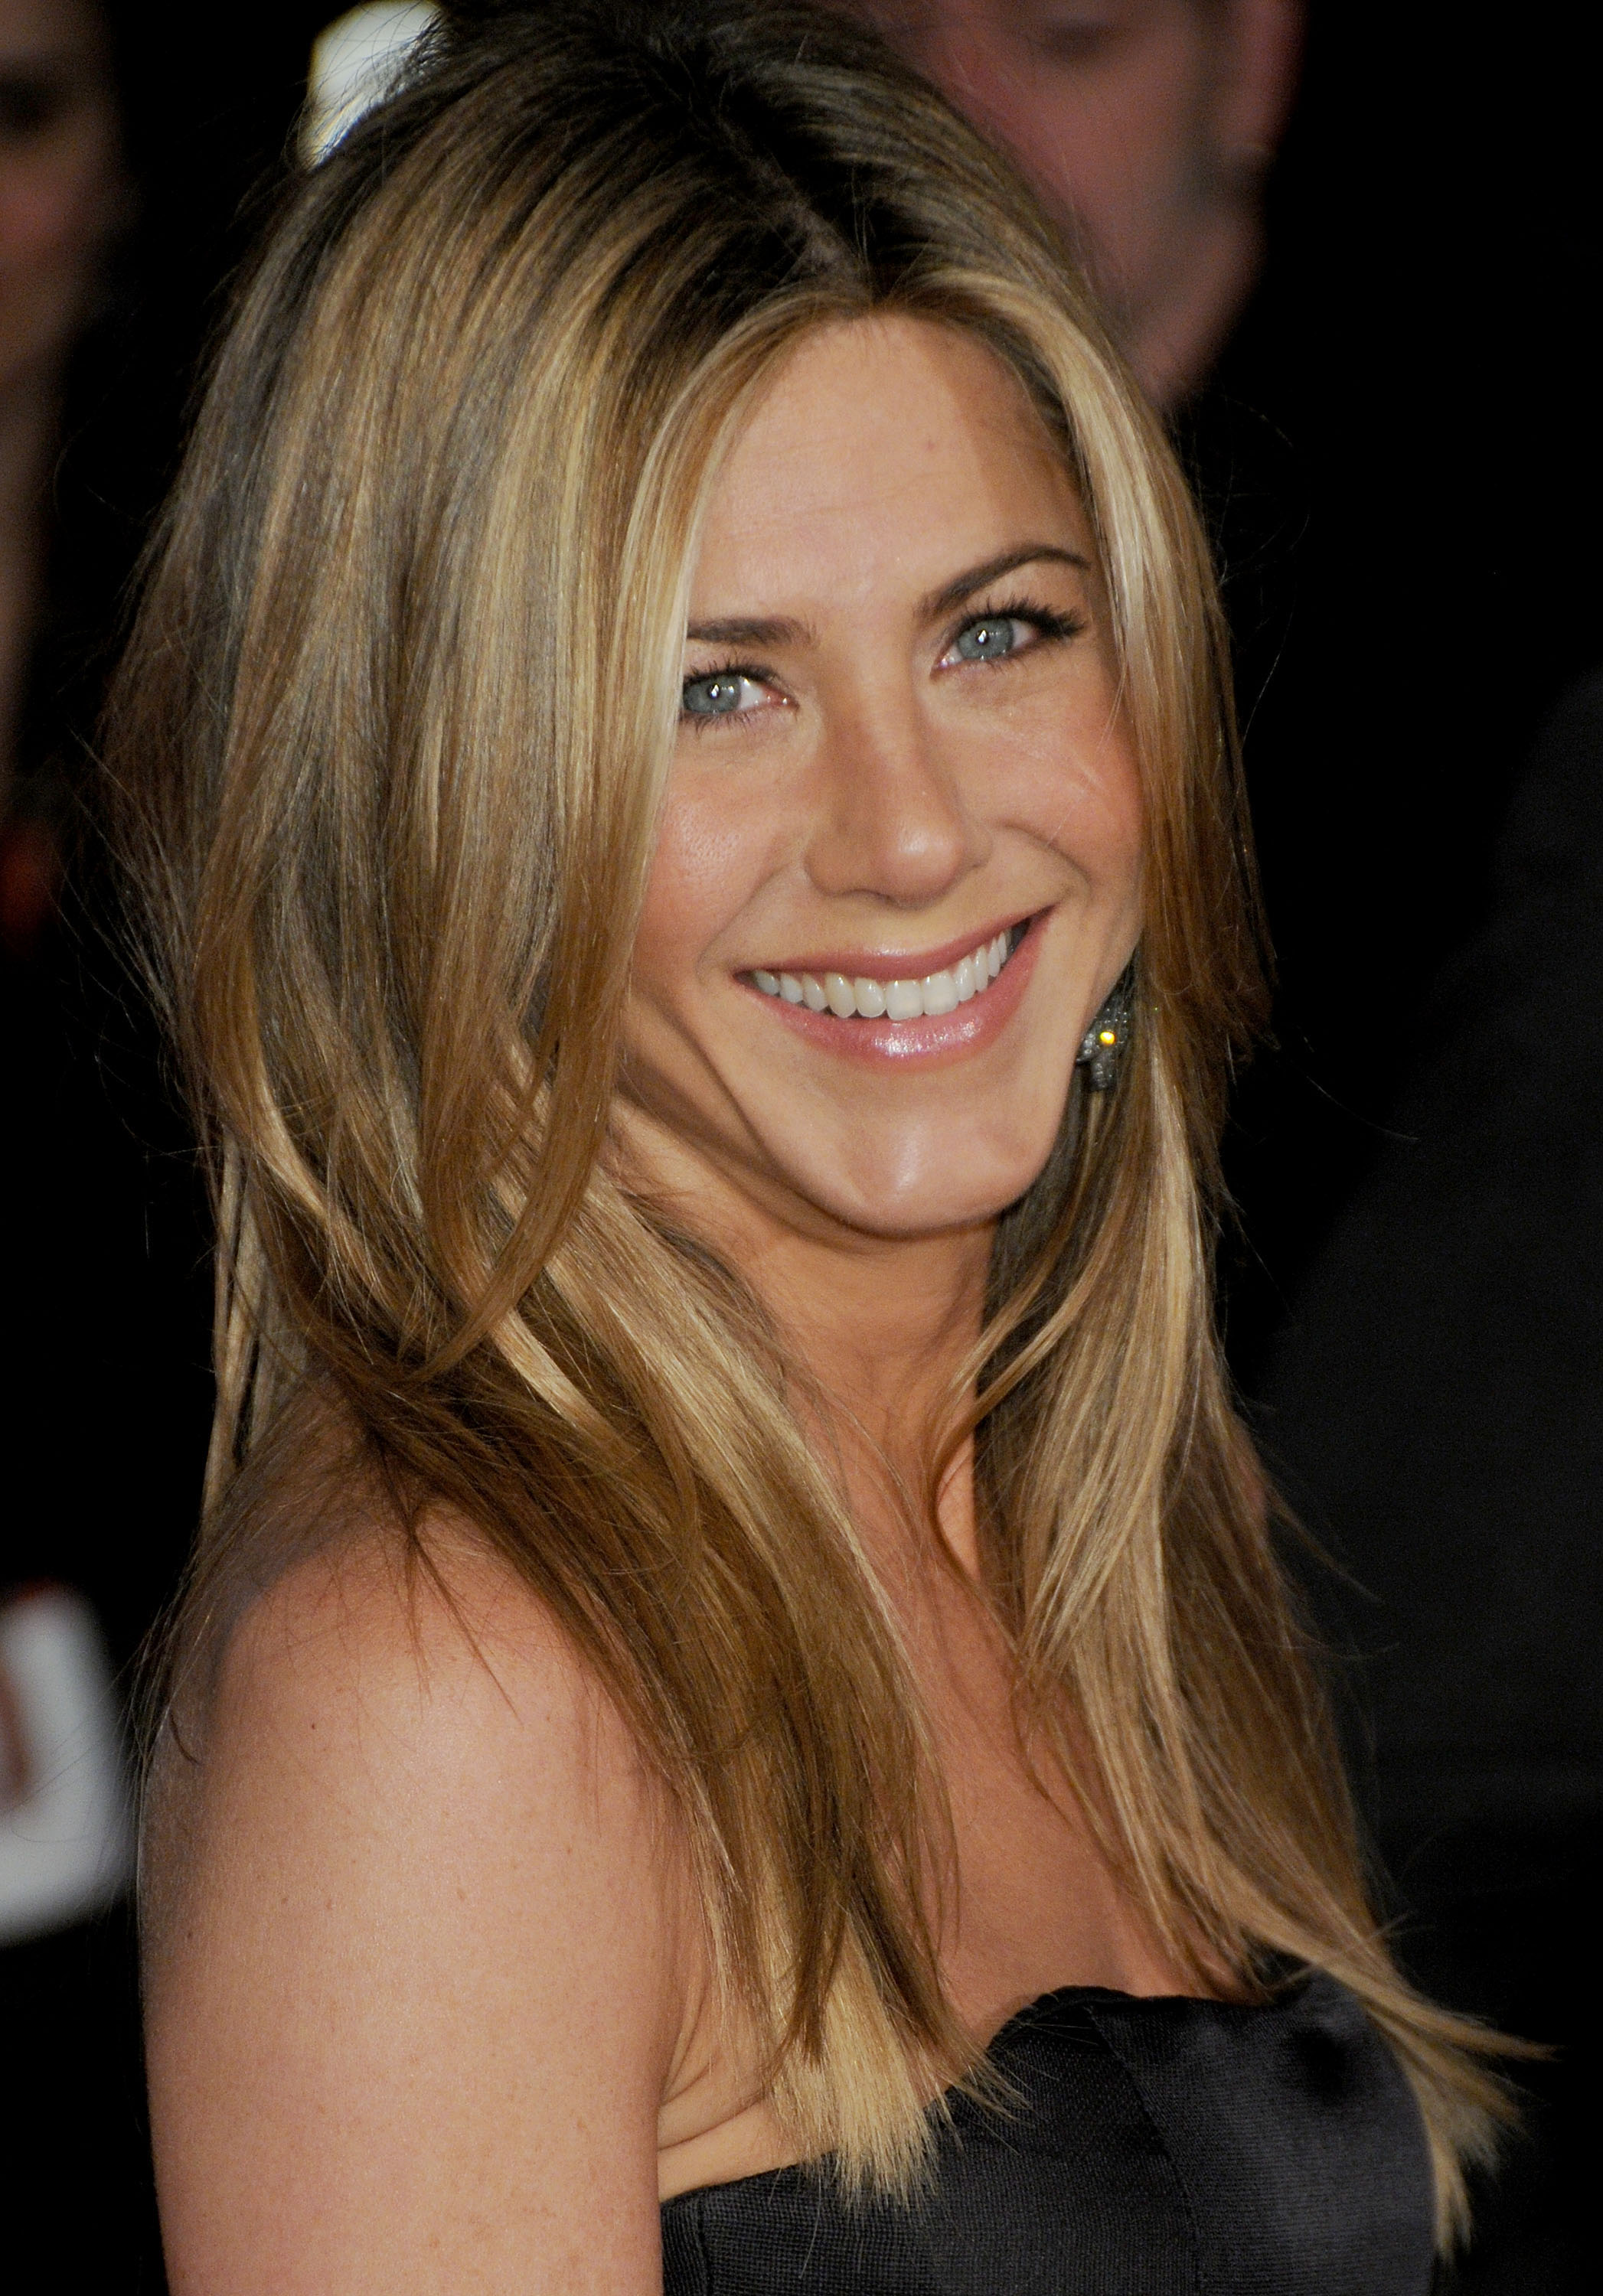 jennifer aniston pictures gallery 10 film actresses. Black Bedroom Furniture Sets. Home Design Ideas